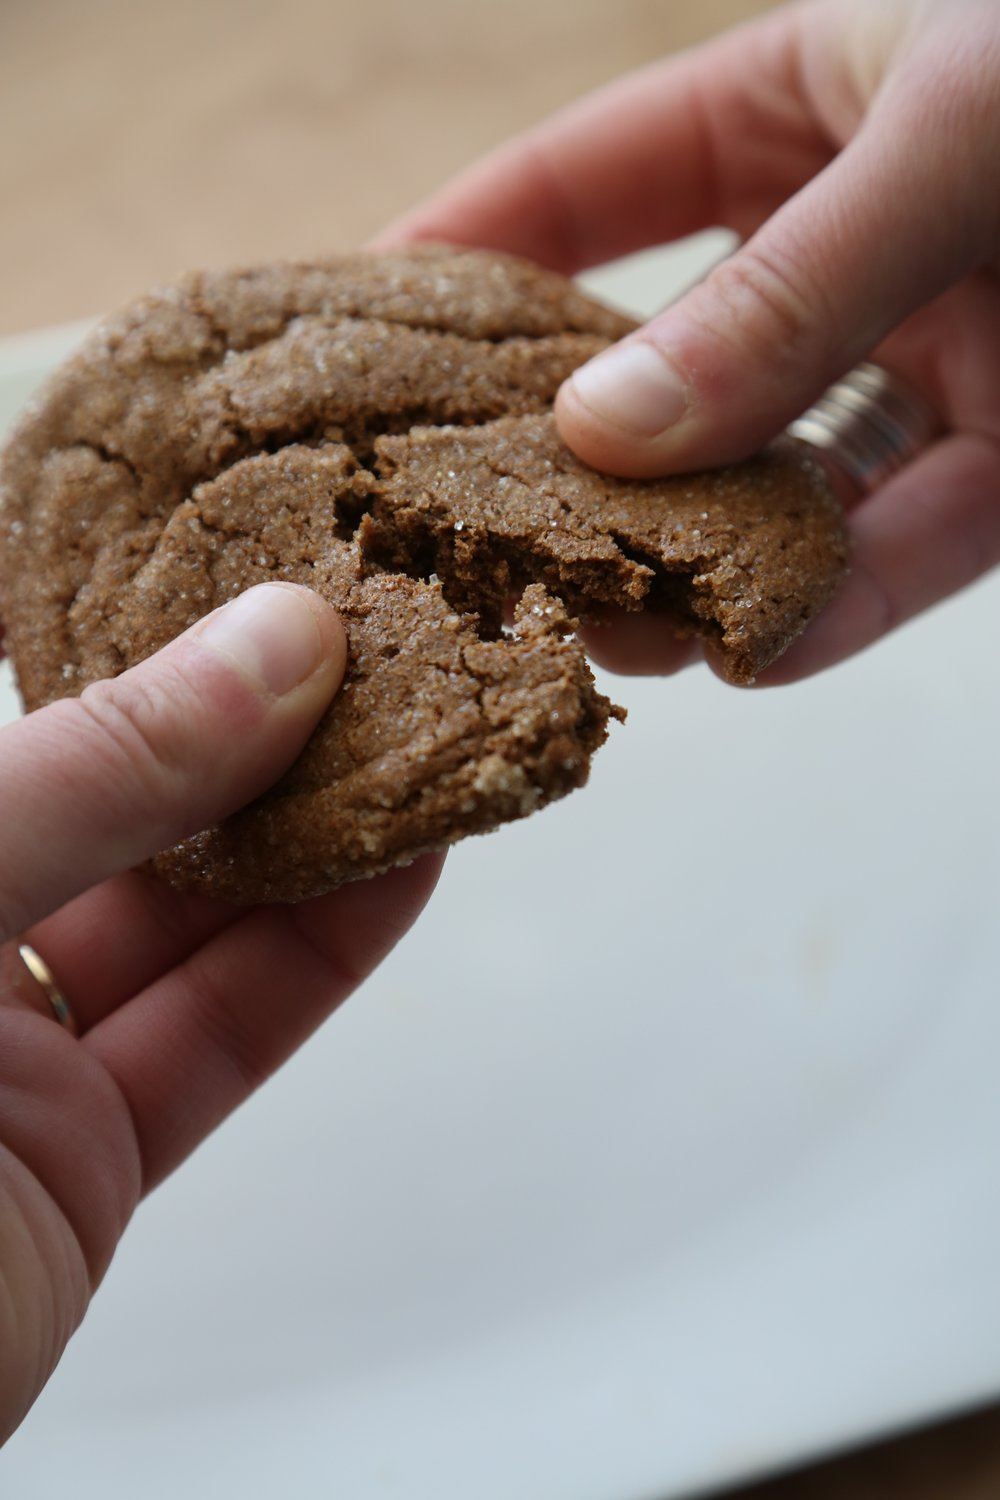 Ginger Cookies - Soft, chewey and gluten free. What more do you need?